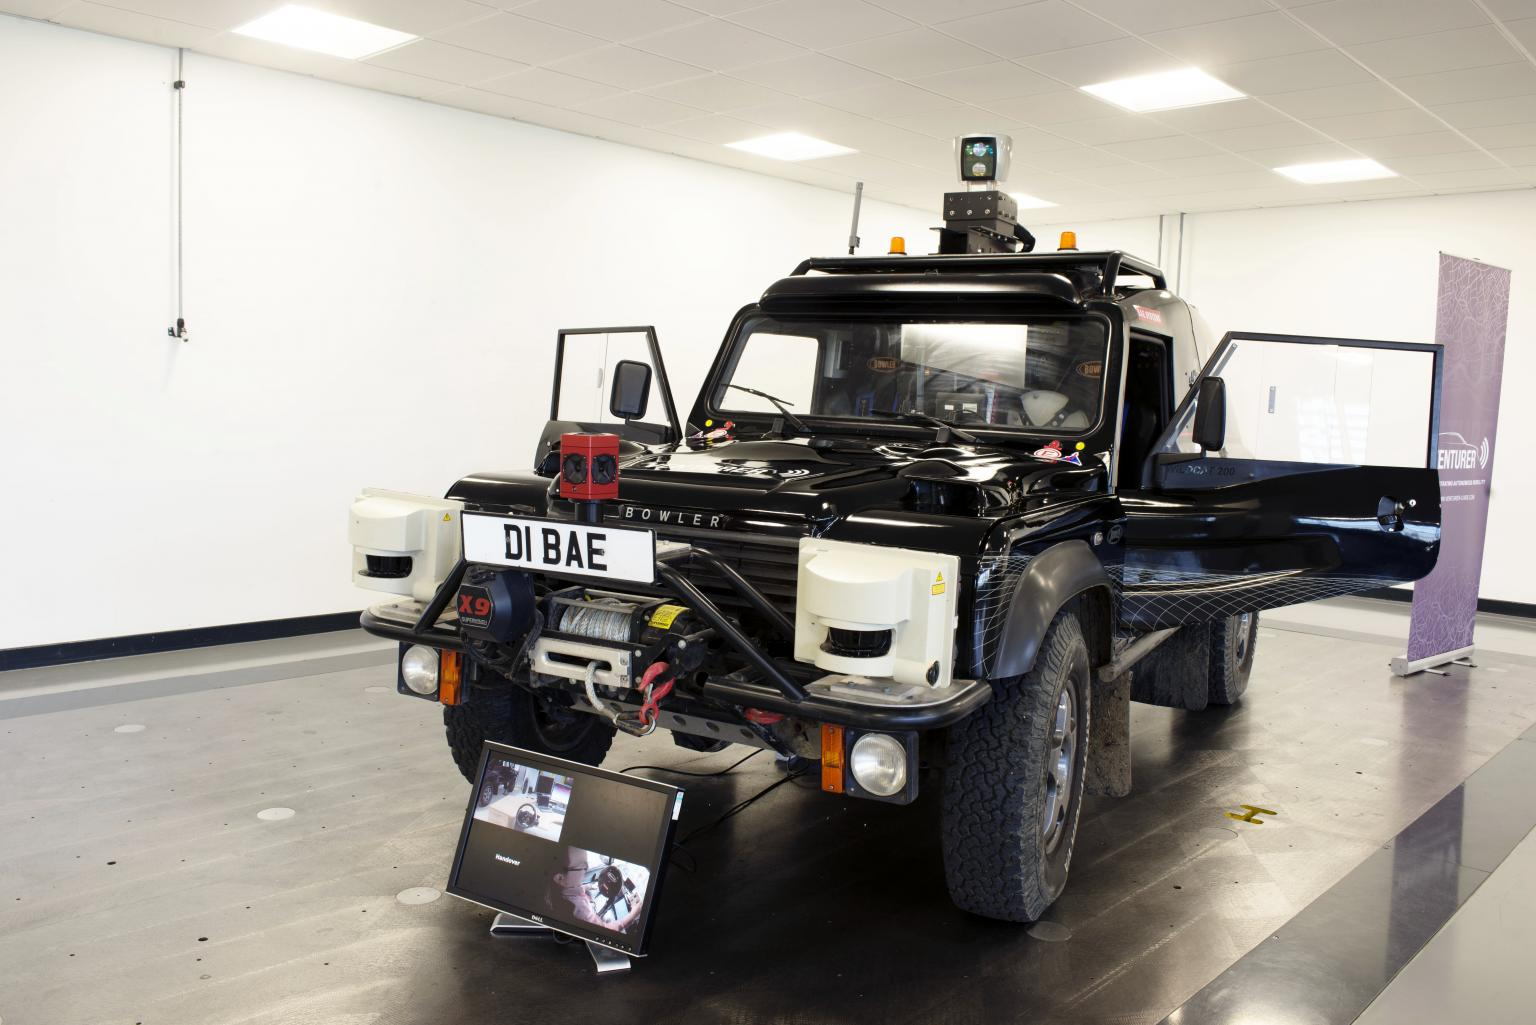 An adapted Land Rover is being used in the Venturer project